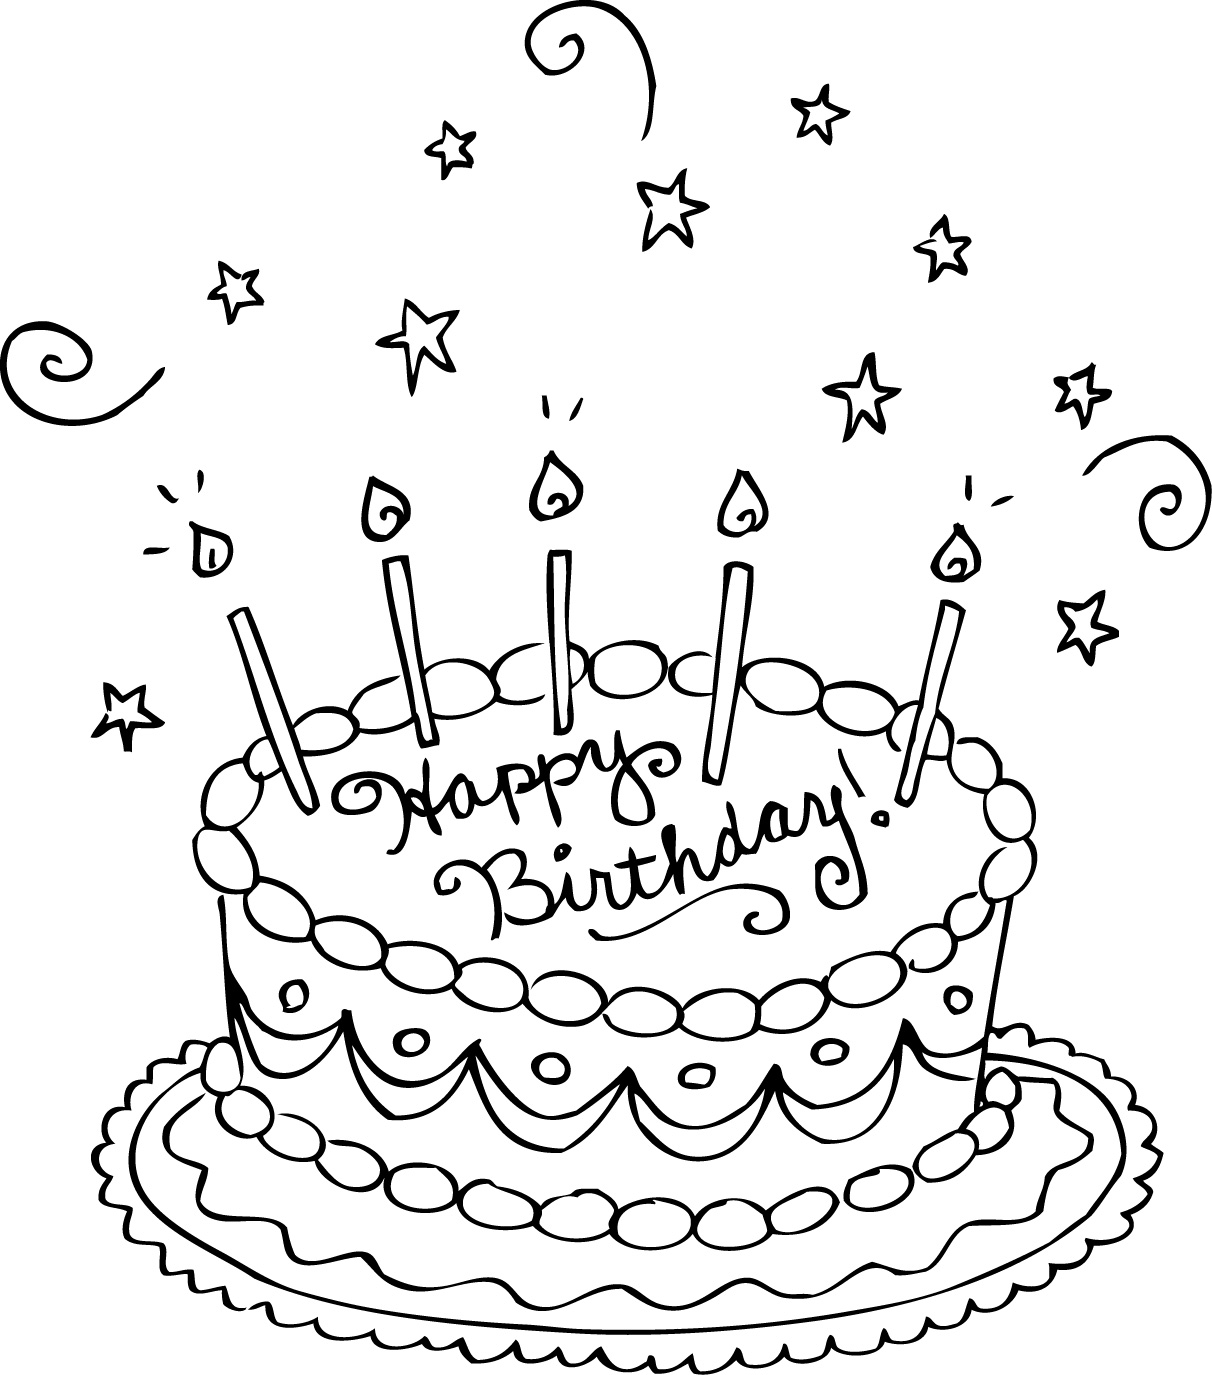 birthday cake coloring free printable birthday cake coloring pages for kids birthday coloring cake